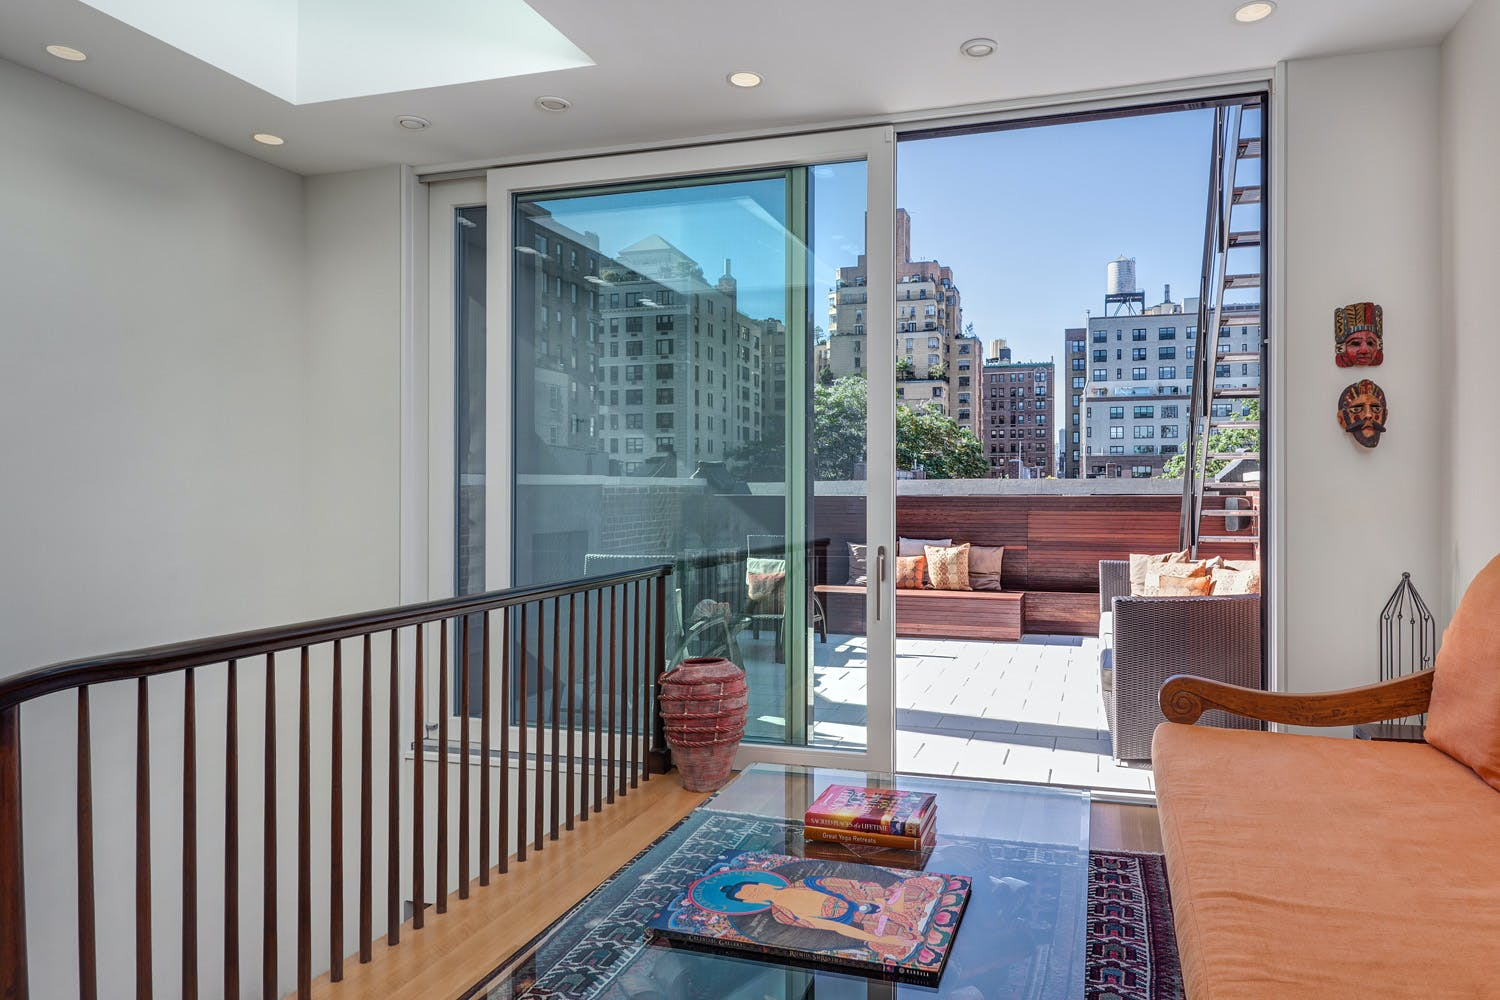 25 West 88th Street - bf2cf381-b64b-4c39-840b-dee8116d861a - New York City Townhouse Real Estate